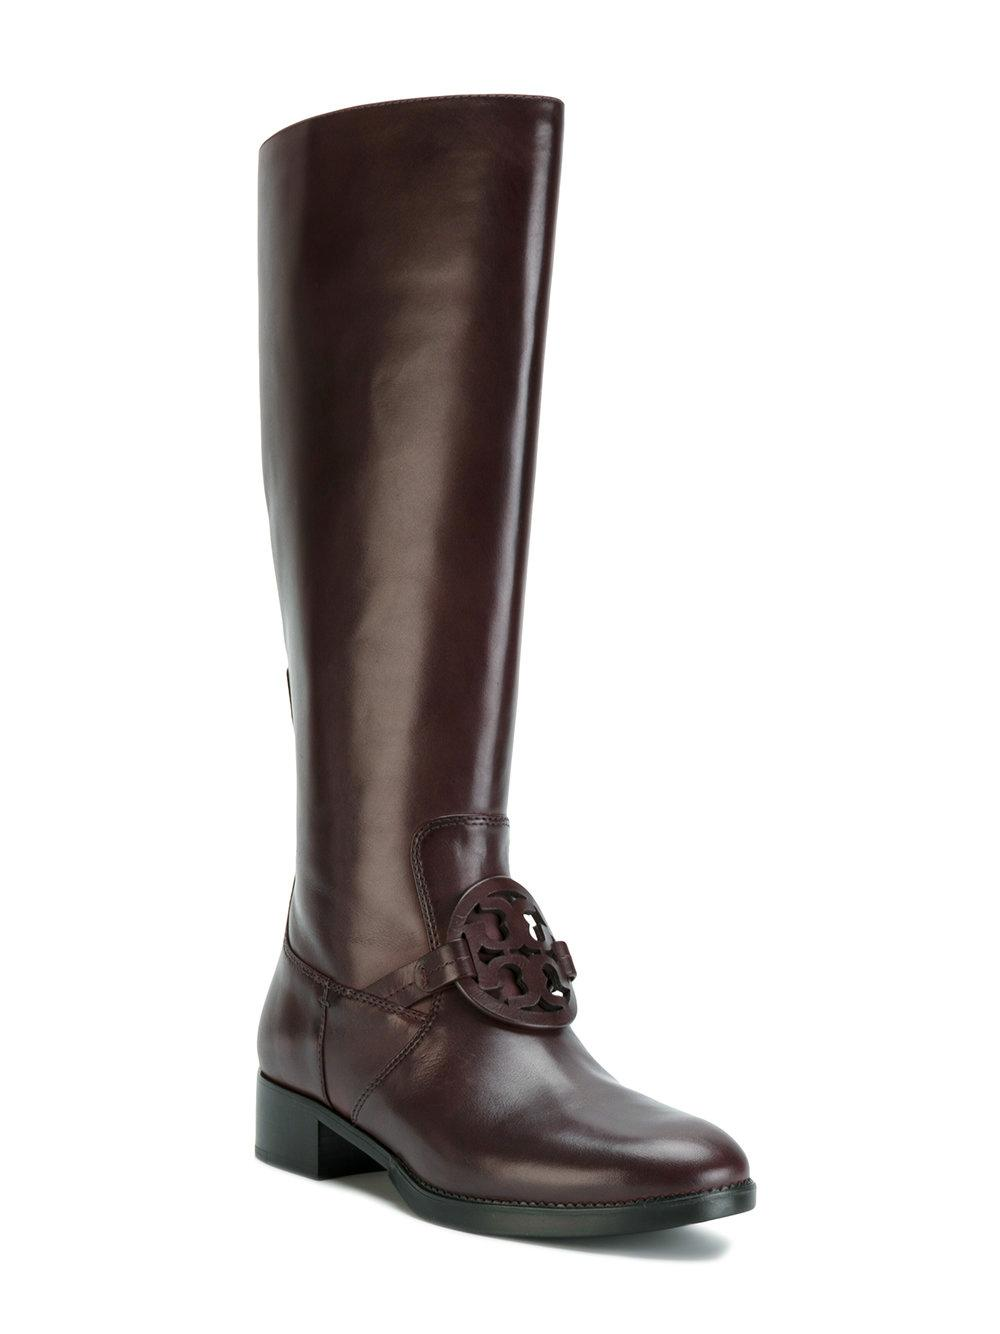 Tory Burch Burn Chocolate Miller Pull-on Leather Boots/Booties Size US 7 Regular (M, B)